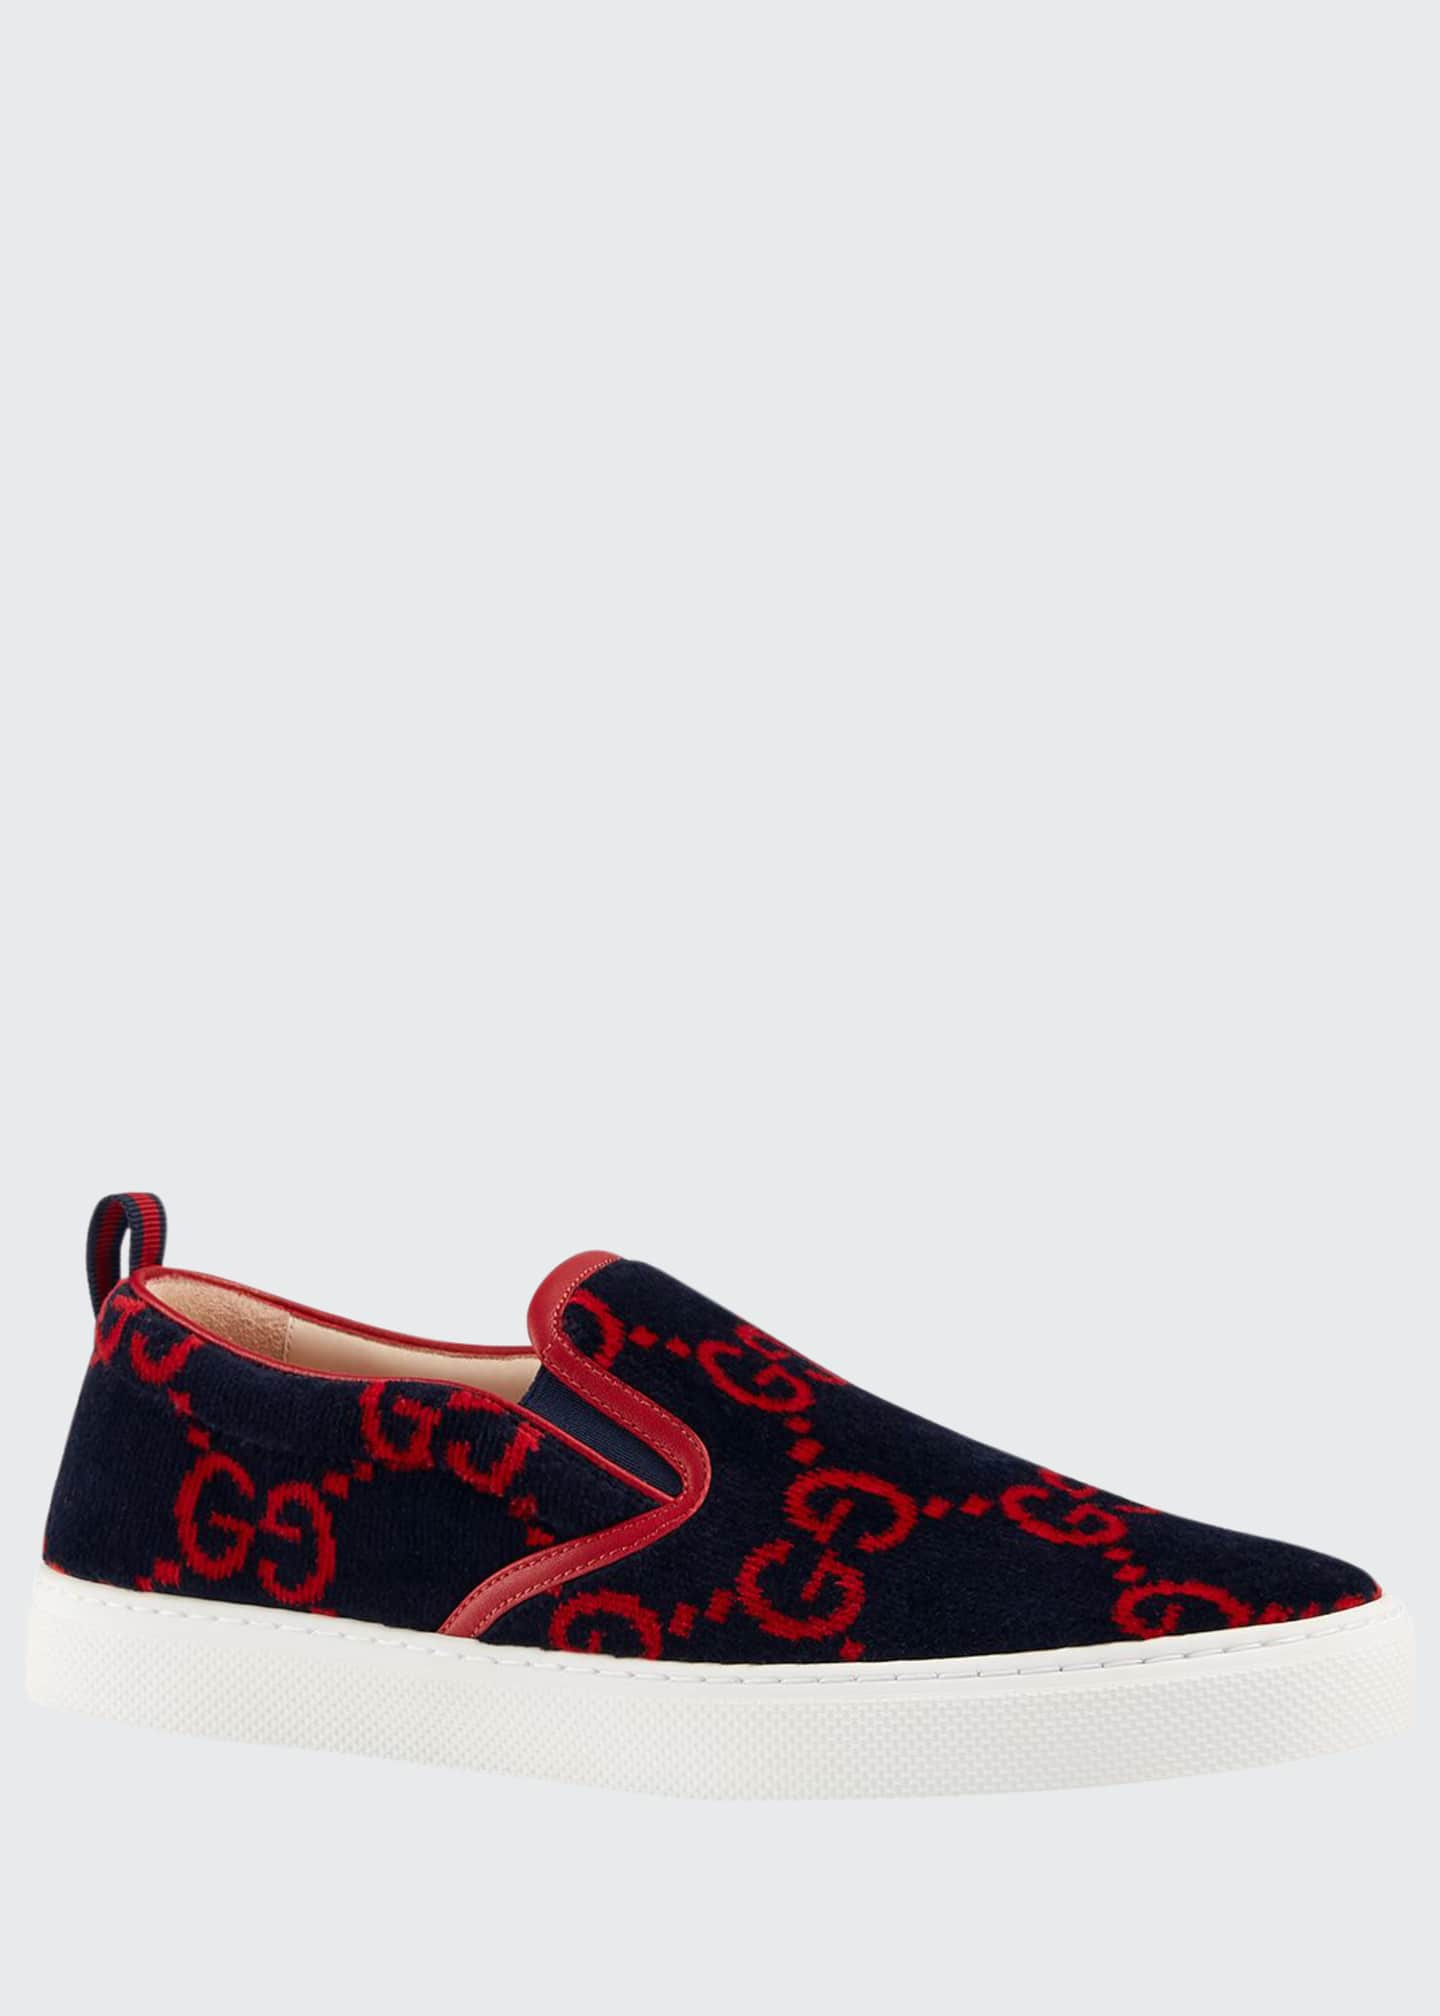 Gucci Men's Dublin Terry Cloth Slip On Sneakers